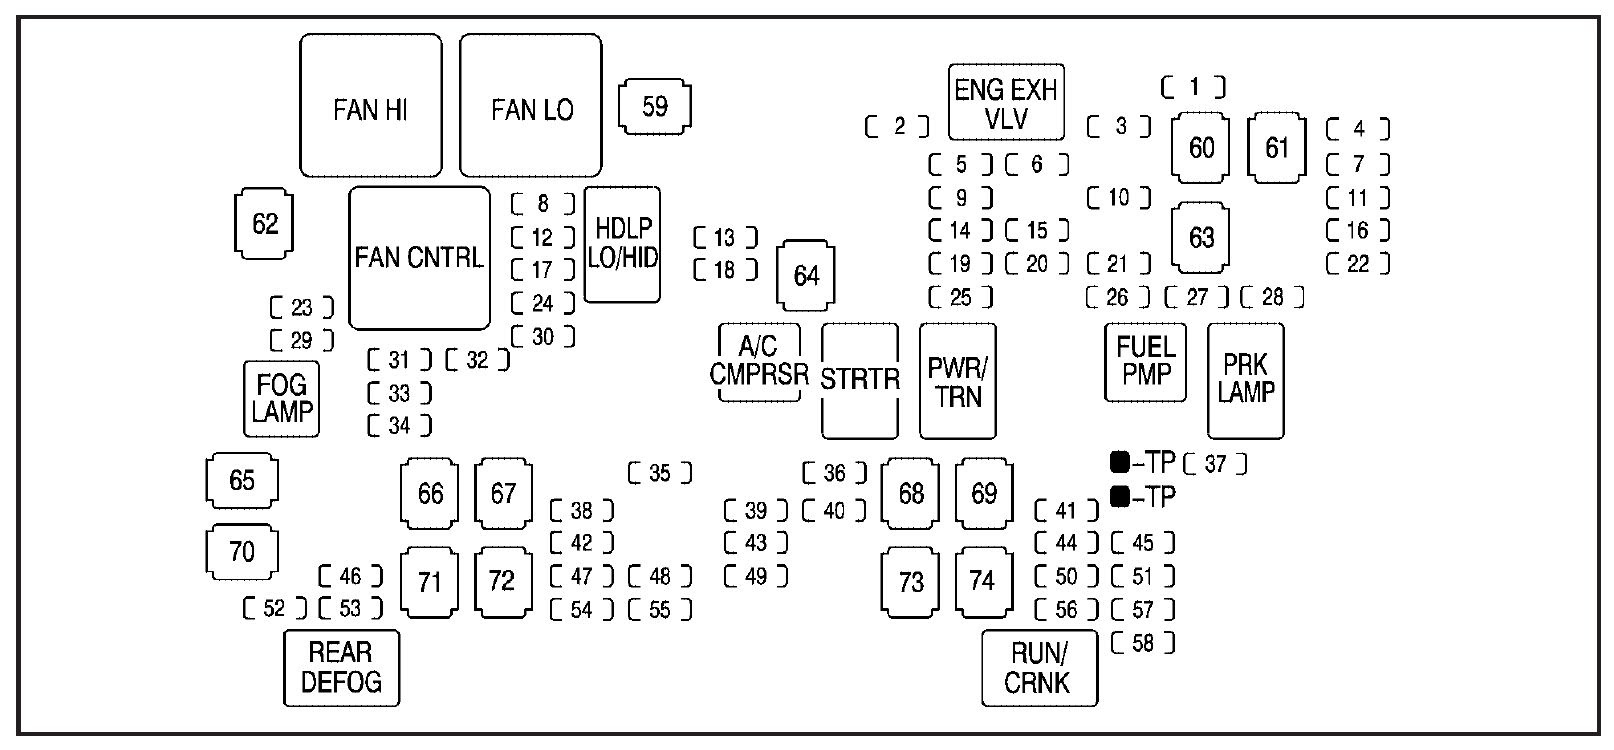 [DIAGRAM] 2008 Gmc Acadia Seat Wiring Diagram FULL Version